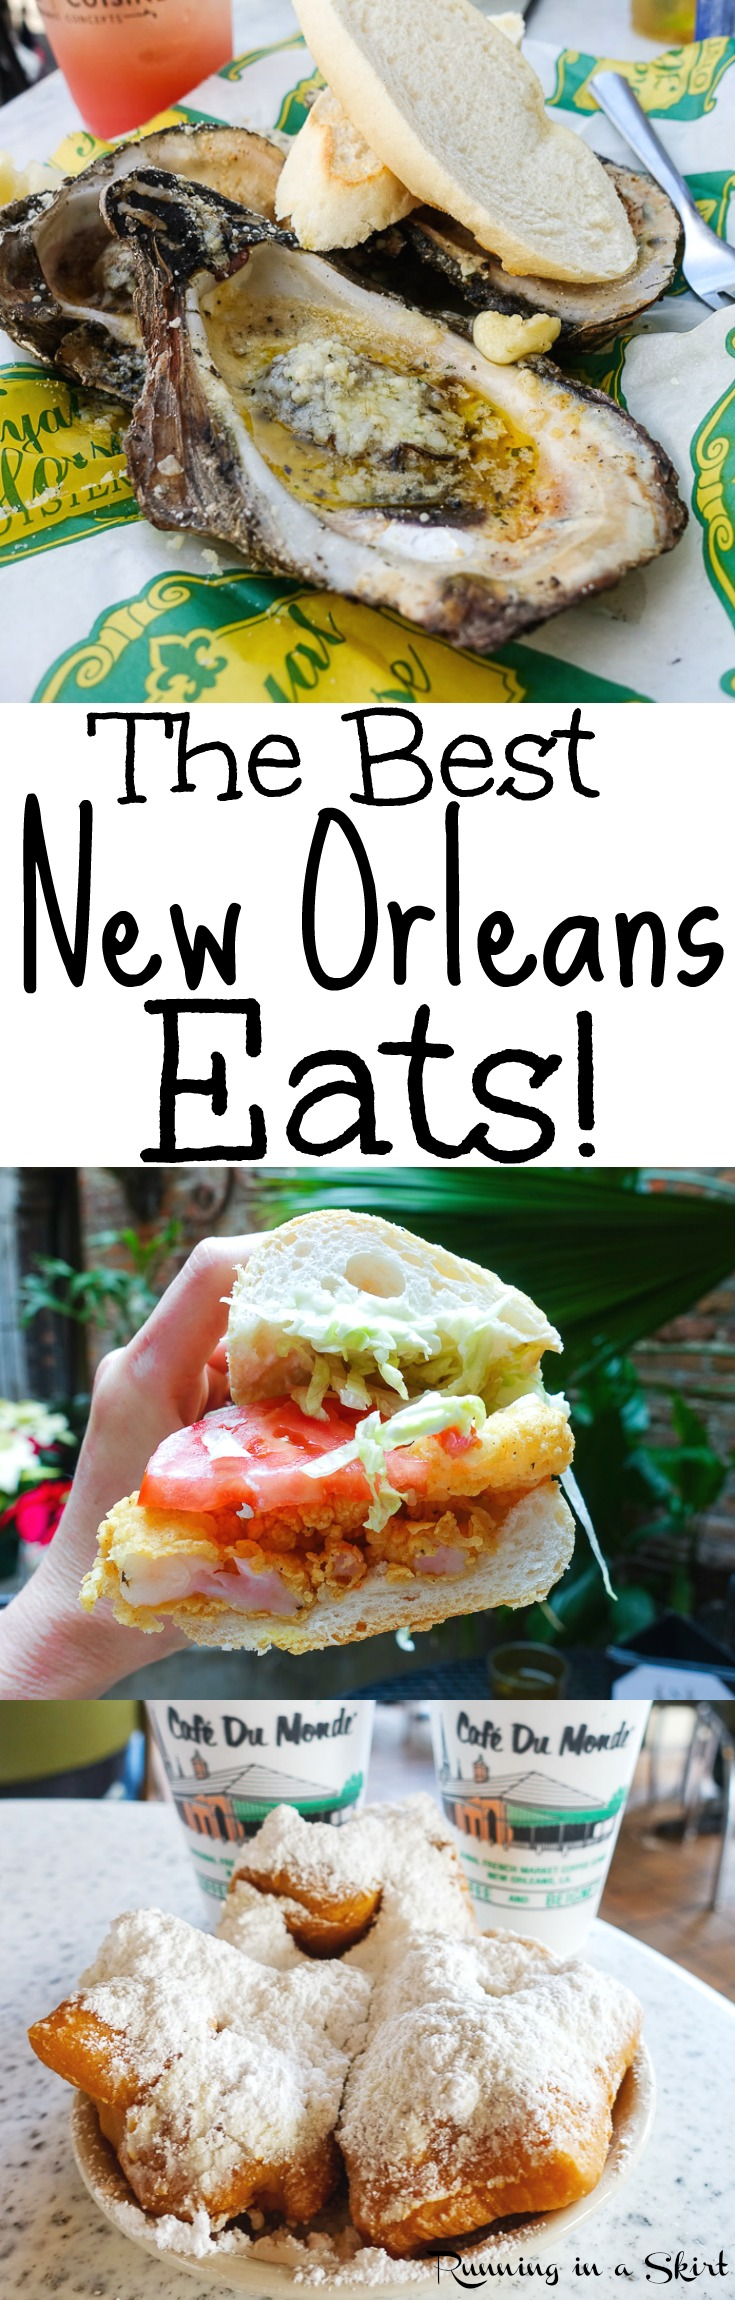 The Best New Orleans Eats & Drinks - A travel guide for the best NOLA restaurants including Cafe du Monde, beignets, po'boys, oysters, gumbo, red beans.  This is the food you have to try in Louisiana... including lots of seafood! A bucket list of places to try in the French Quarter and beyond... including breakfast, lunch and dinner./ Running in a Skirt via @juliewunder